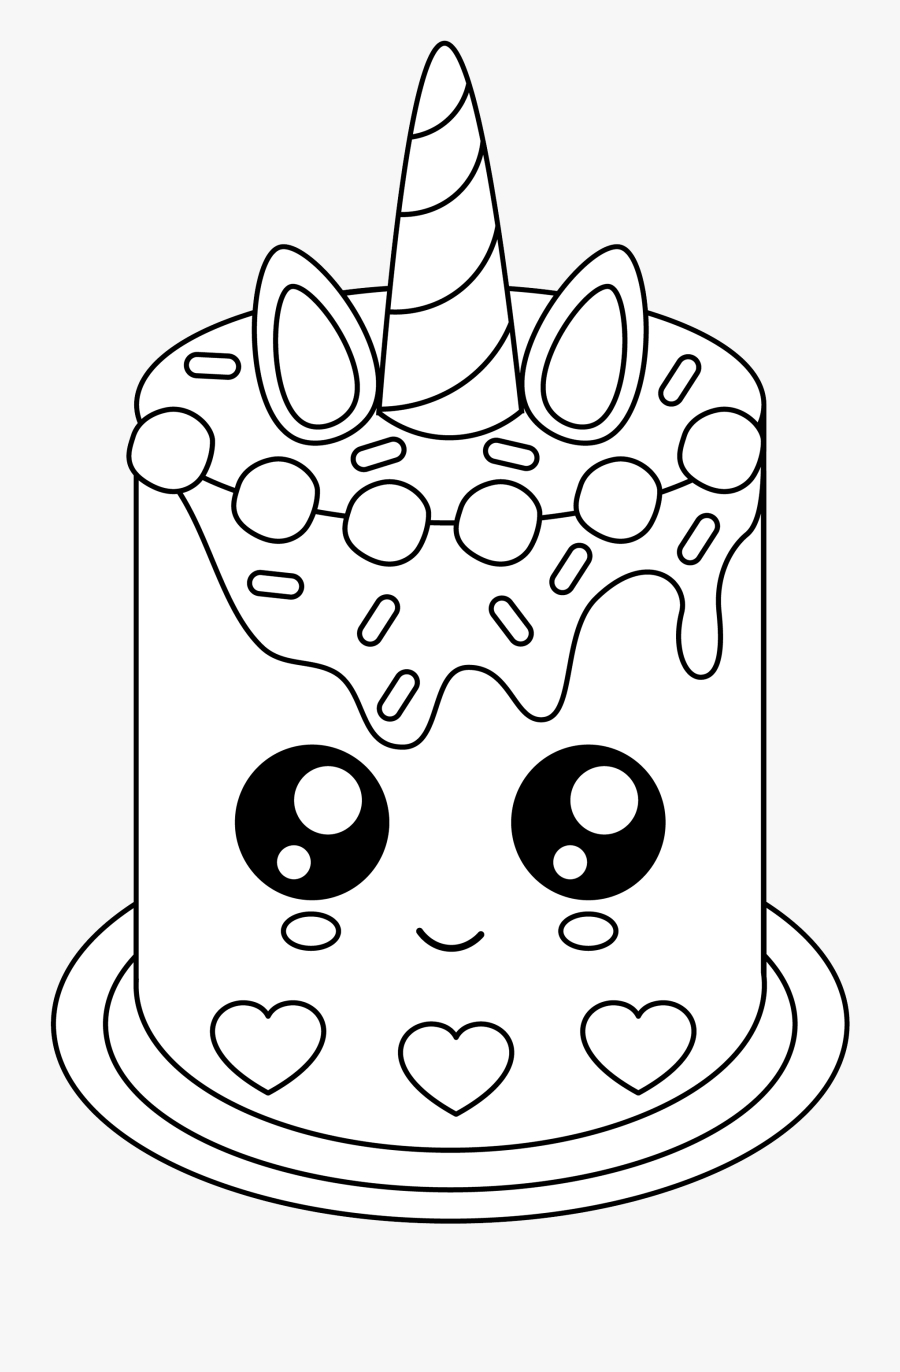 Free Cute Unicorn Cake - Unicorn Cake Coloring Pages ...